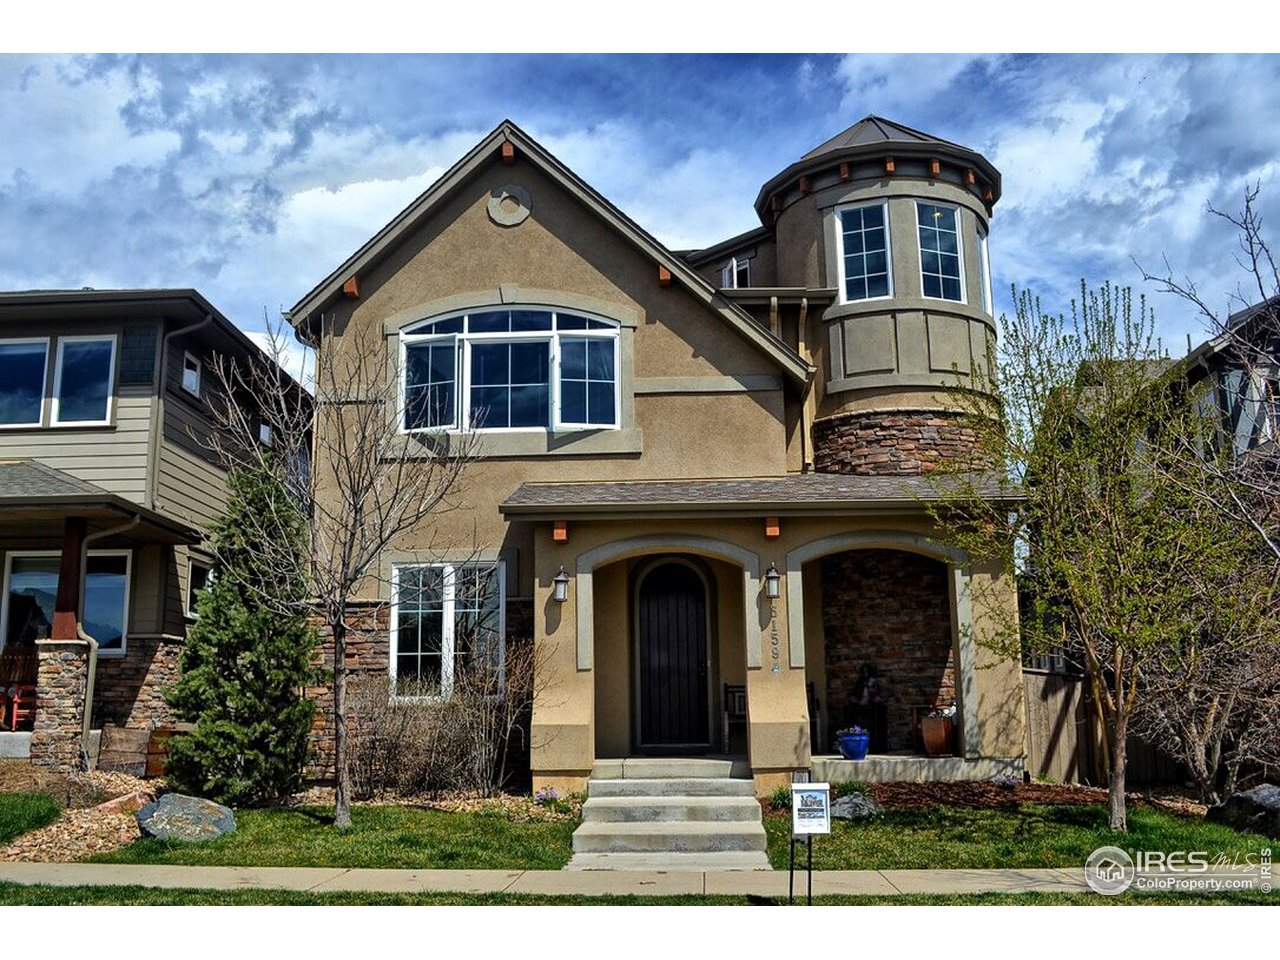 3159 Ouray St, Boulder CO 80301